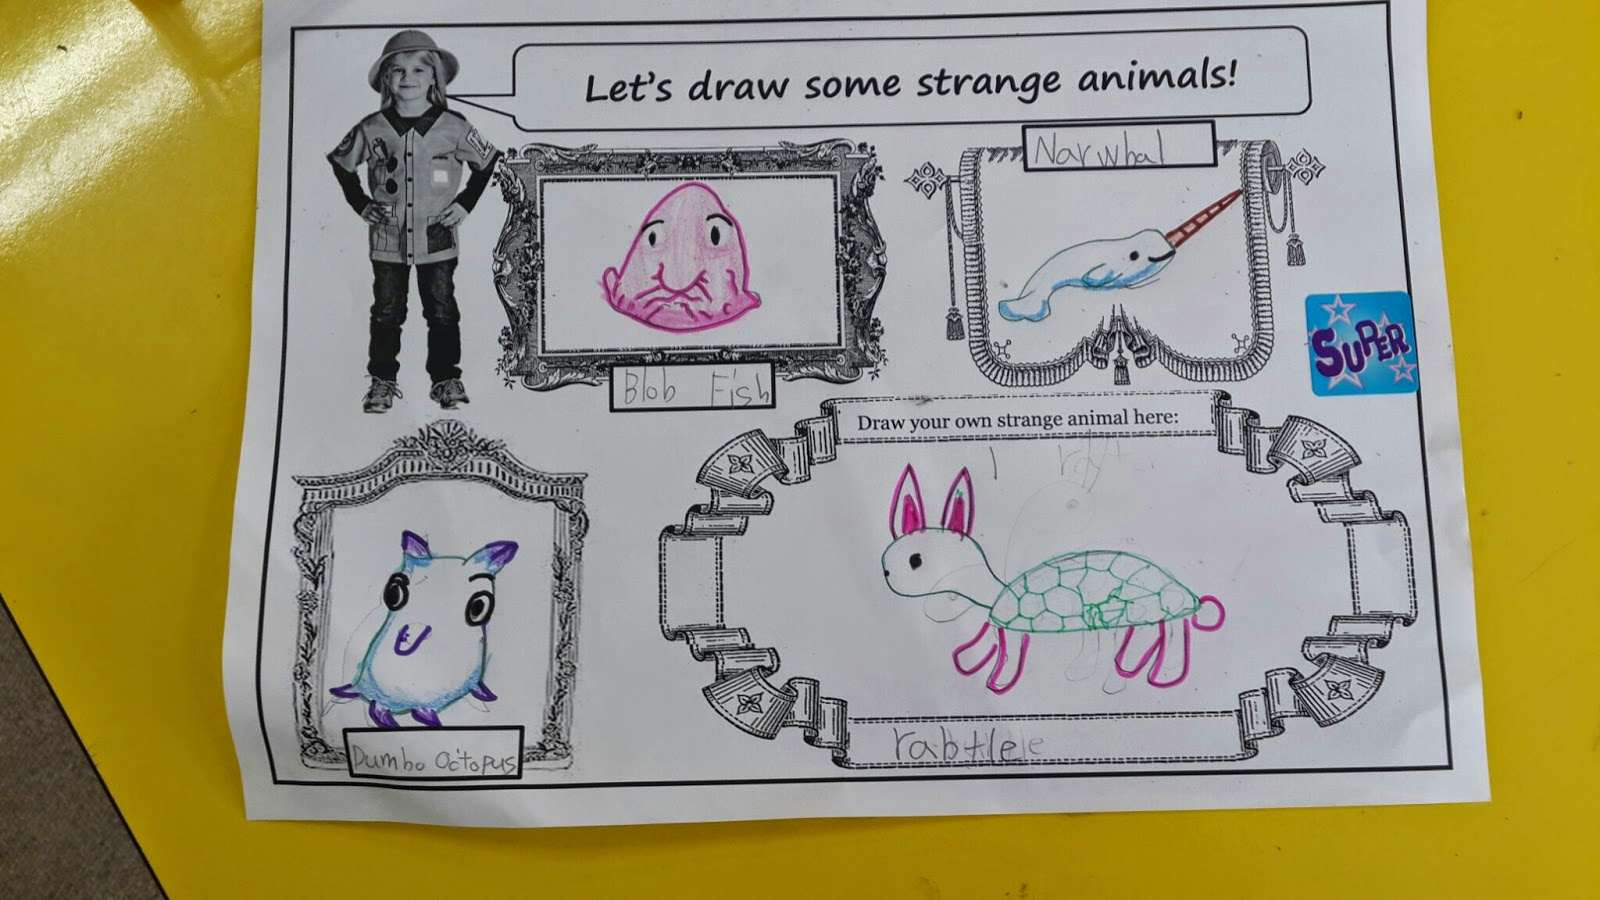 Strange Animals Esl Class Free Ppt And Worksheet Mrs